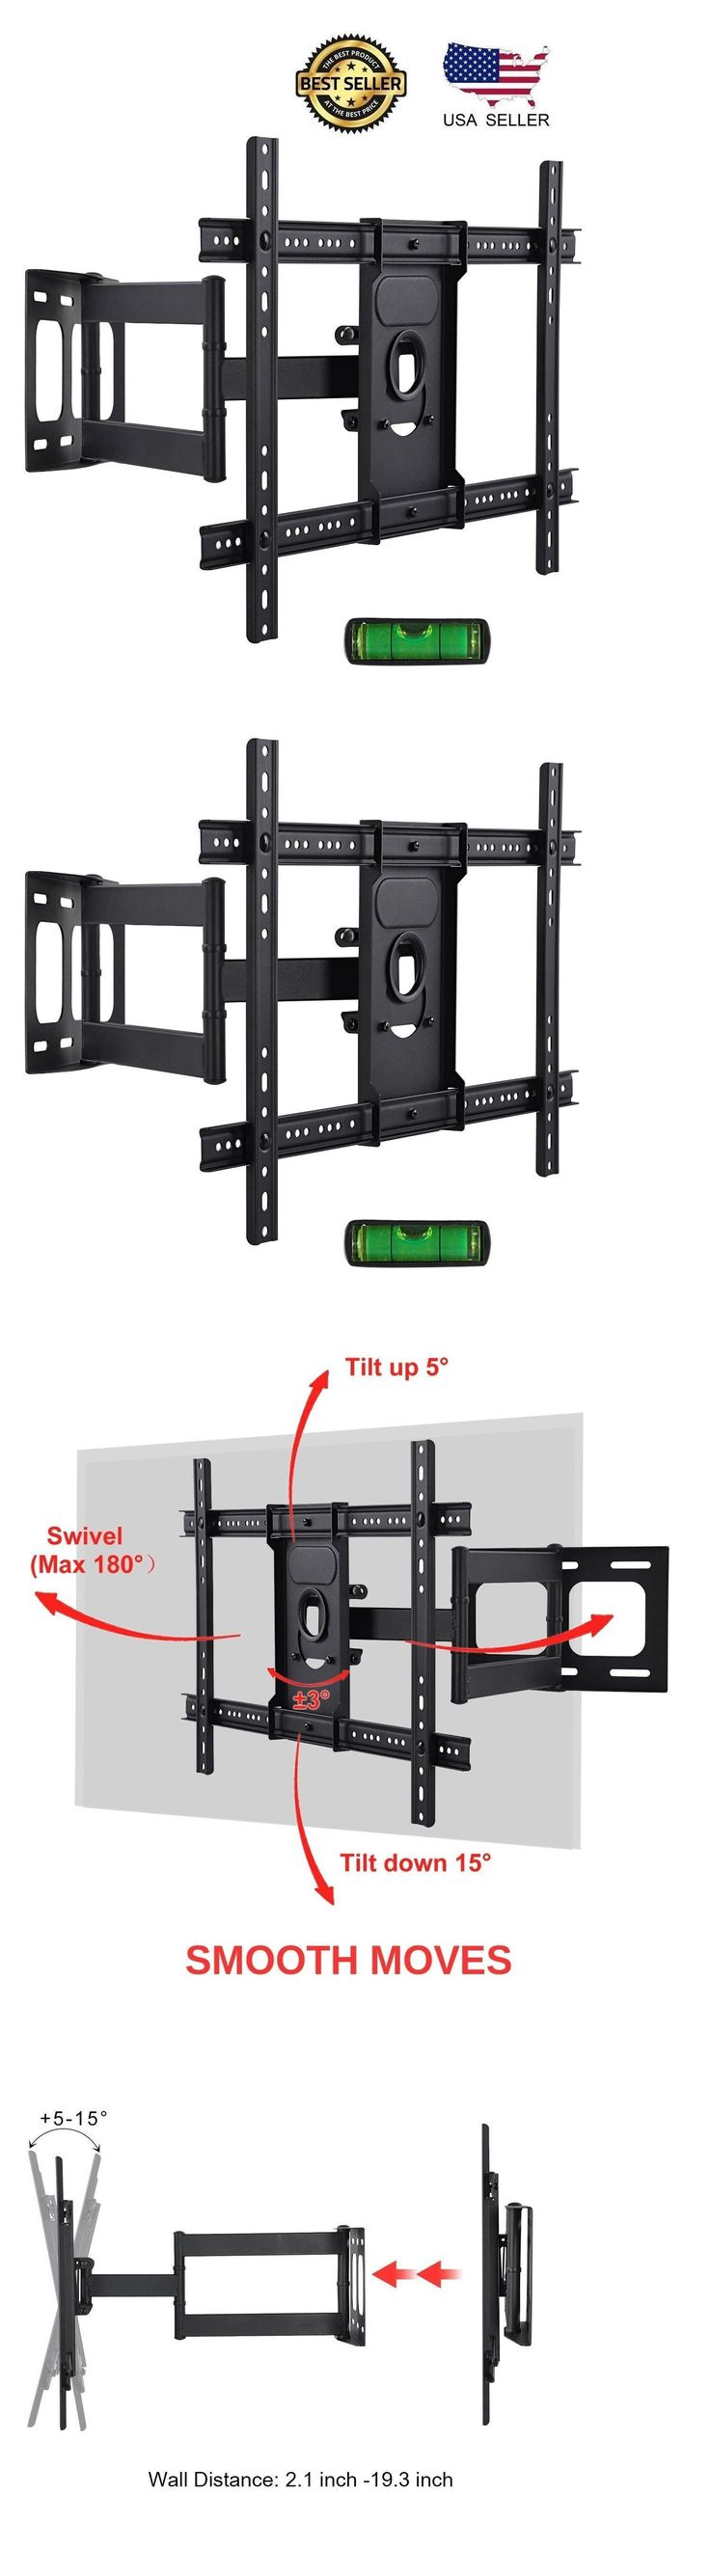 TV Mounts and Brackets: New Ultra Strong Full Motion Safty Tv Wall Mount Bracket For 37-65 Inch Led Lcd -> BUY IT NOW ONLY: $51.91 on eBay!